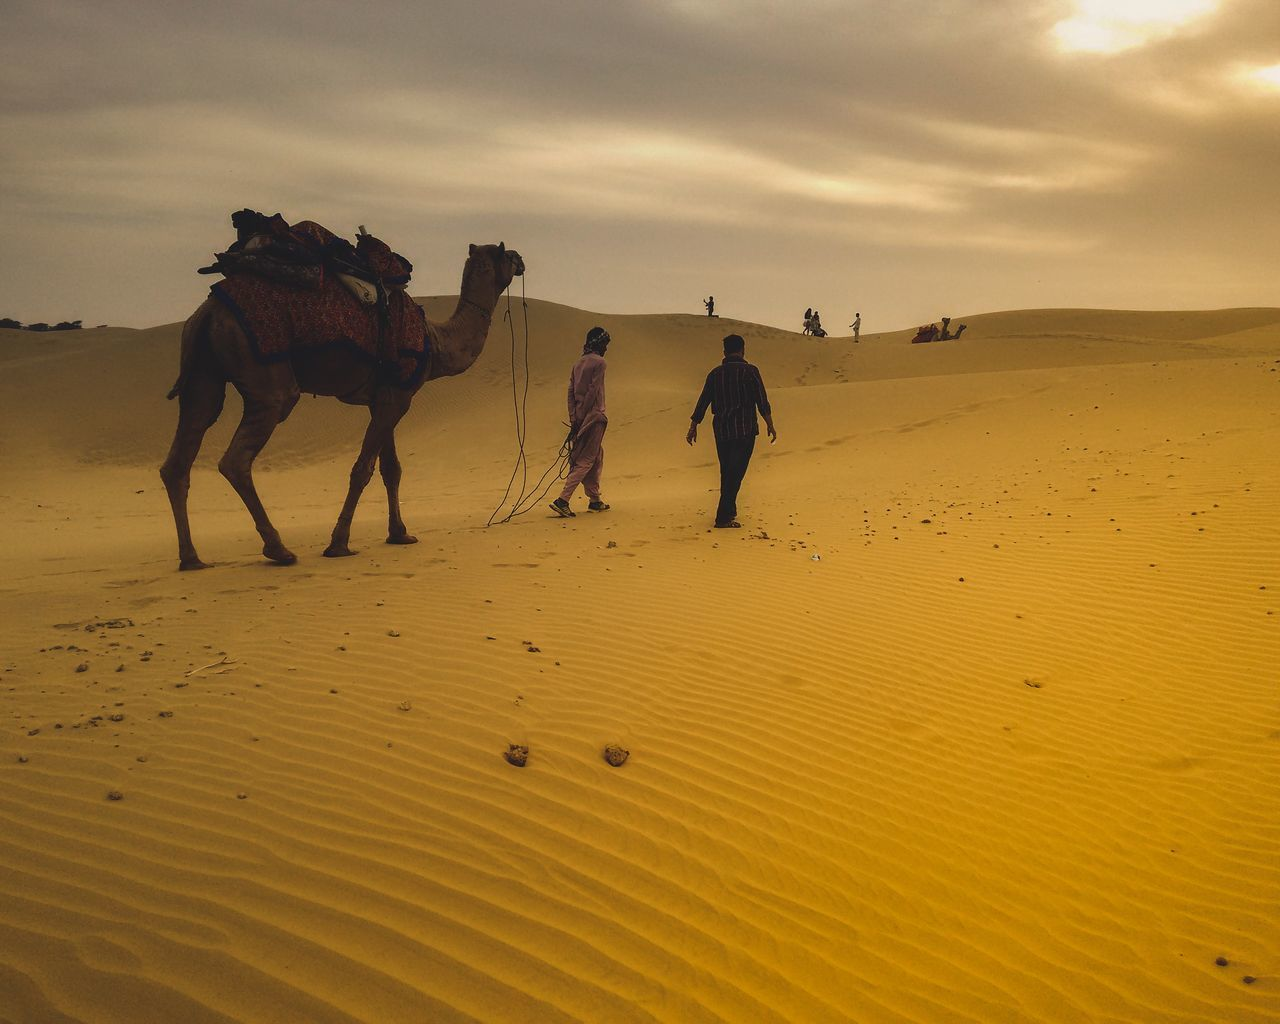 sand, domestic animals, mammal, horse, sky, desert, men, sand dune, real people, togetherness, nature, outdoors, full length, day, people